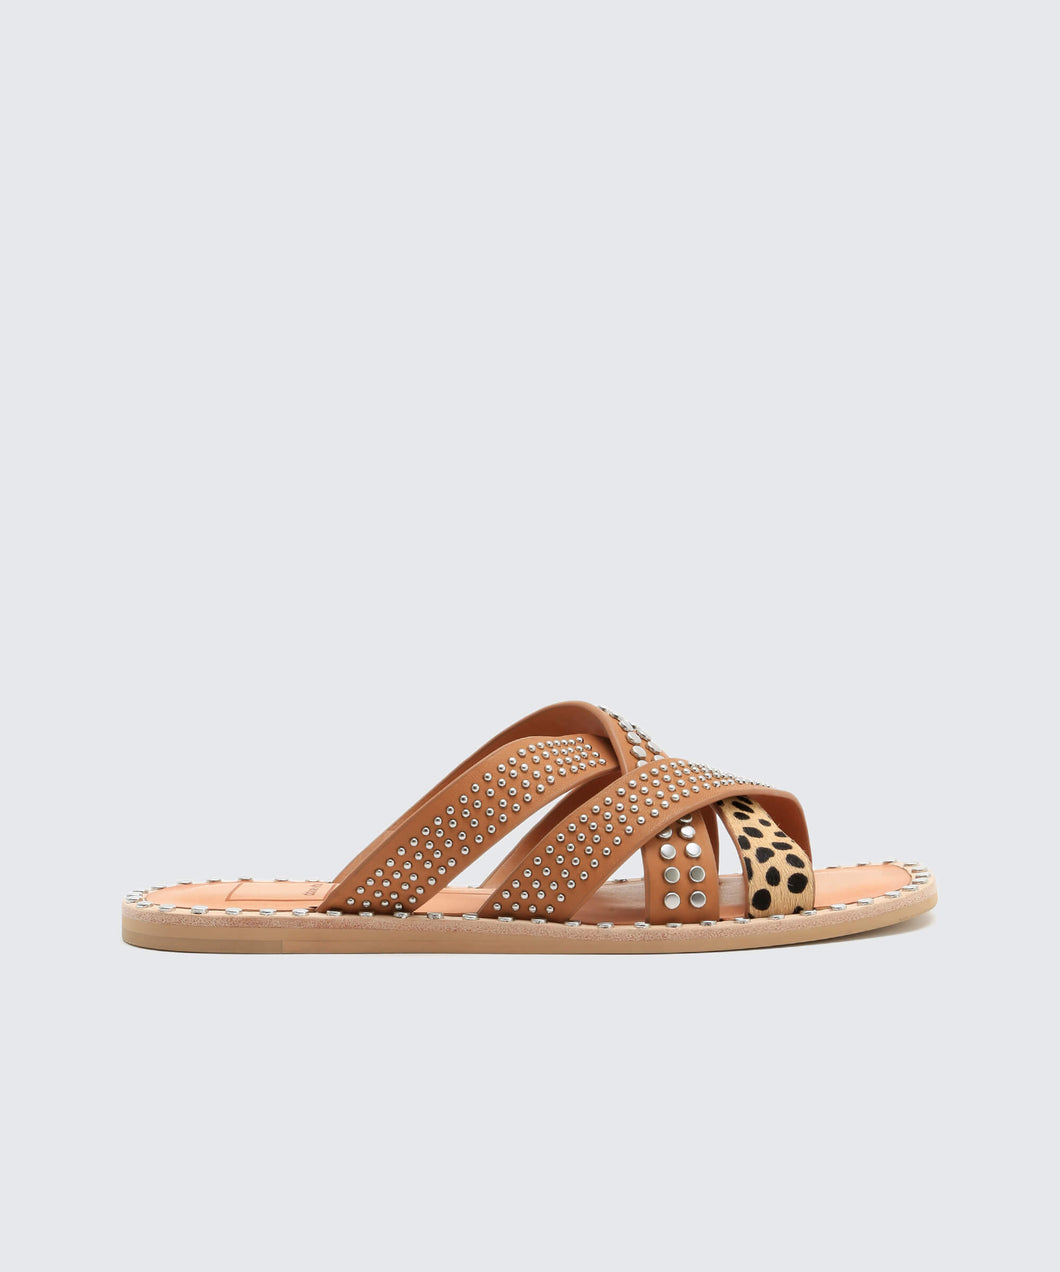 CORBEY SANDALS IN CARAMEL -   Dolce Vita